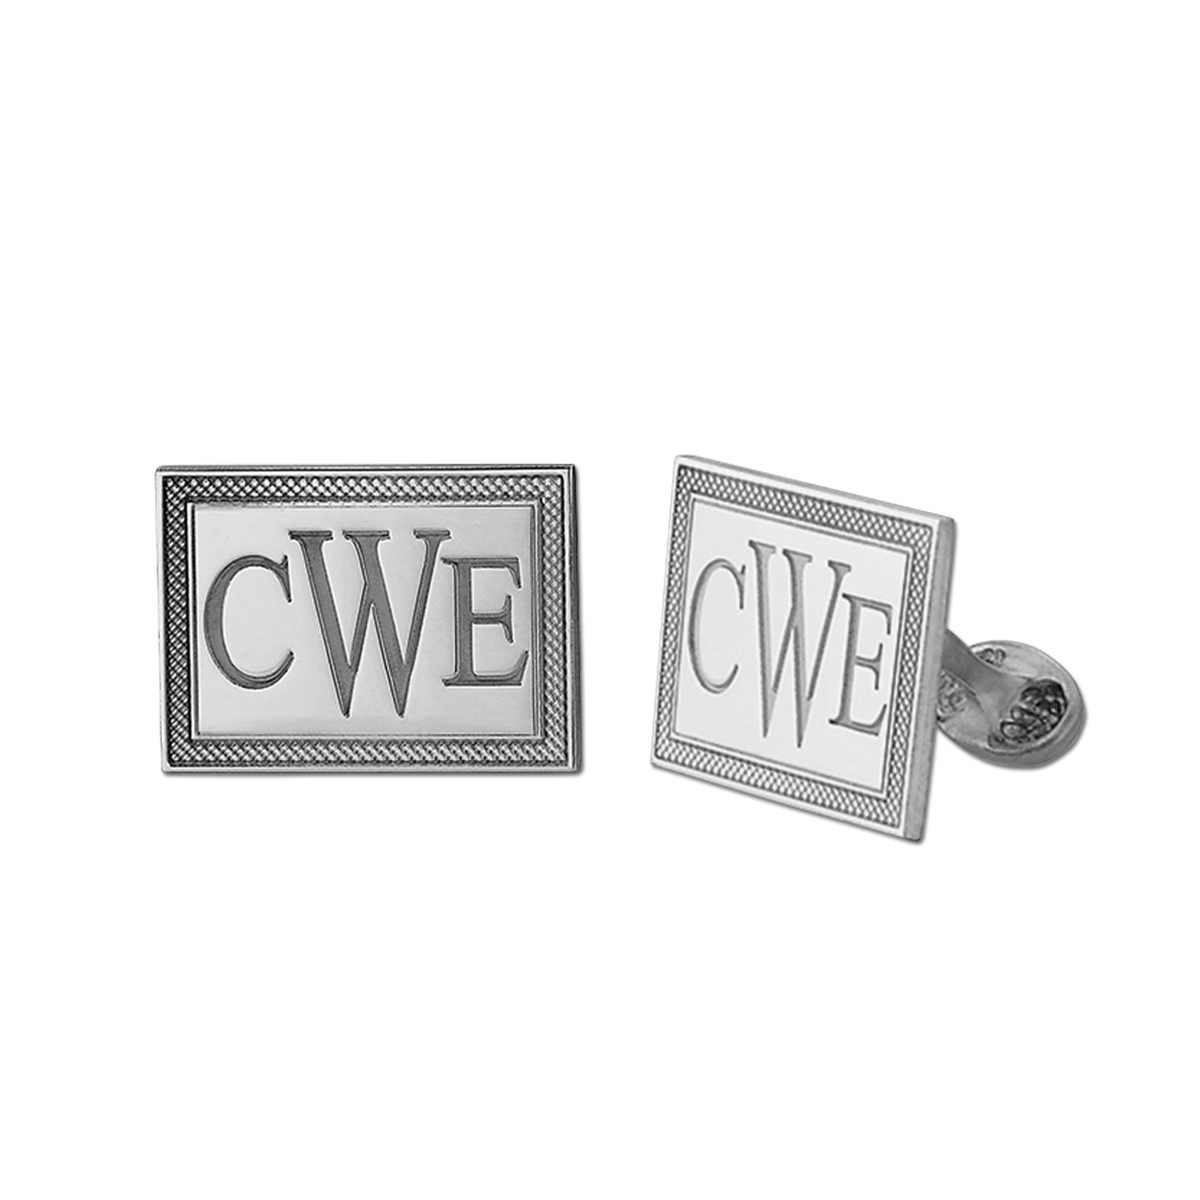 PICTURED AS CWE 14X21 MM CUFFLINK